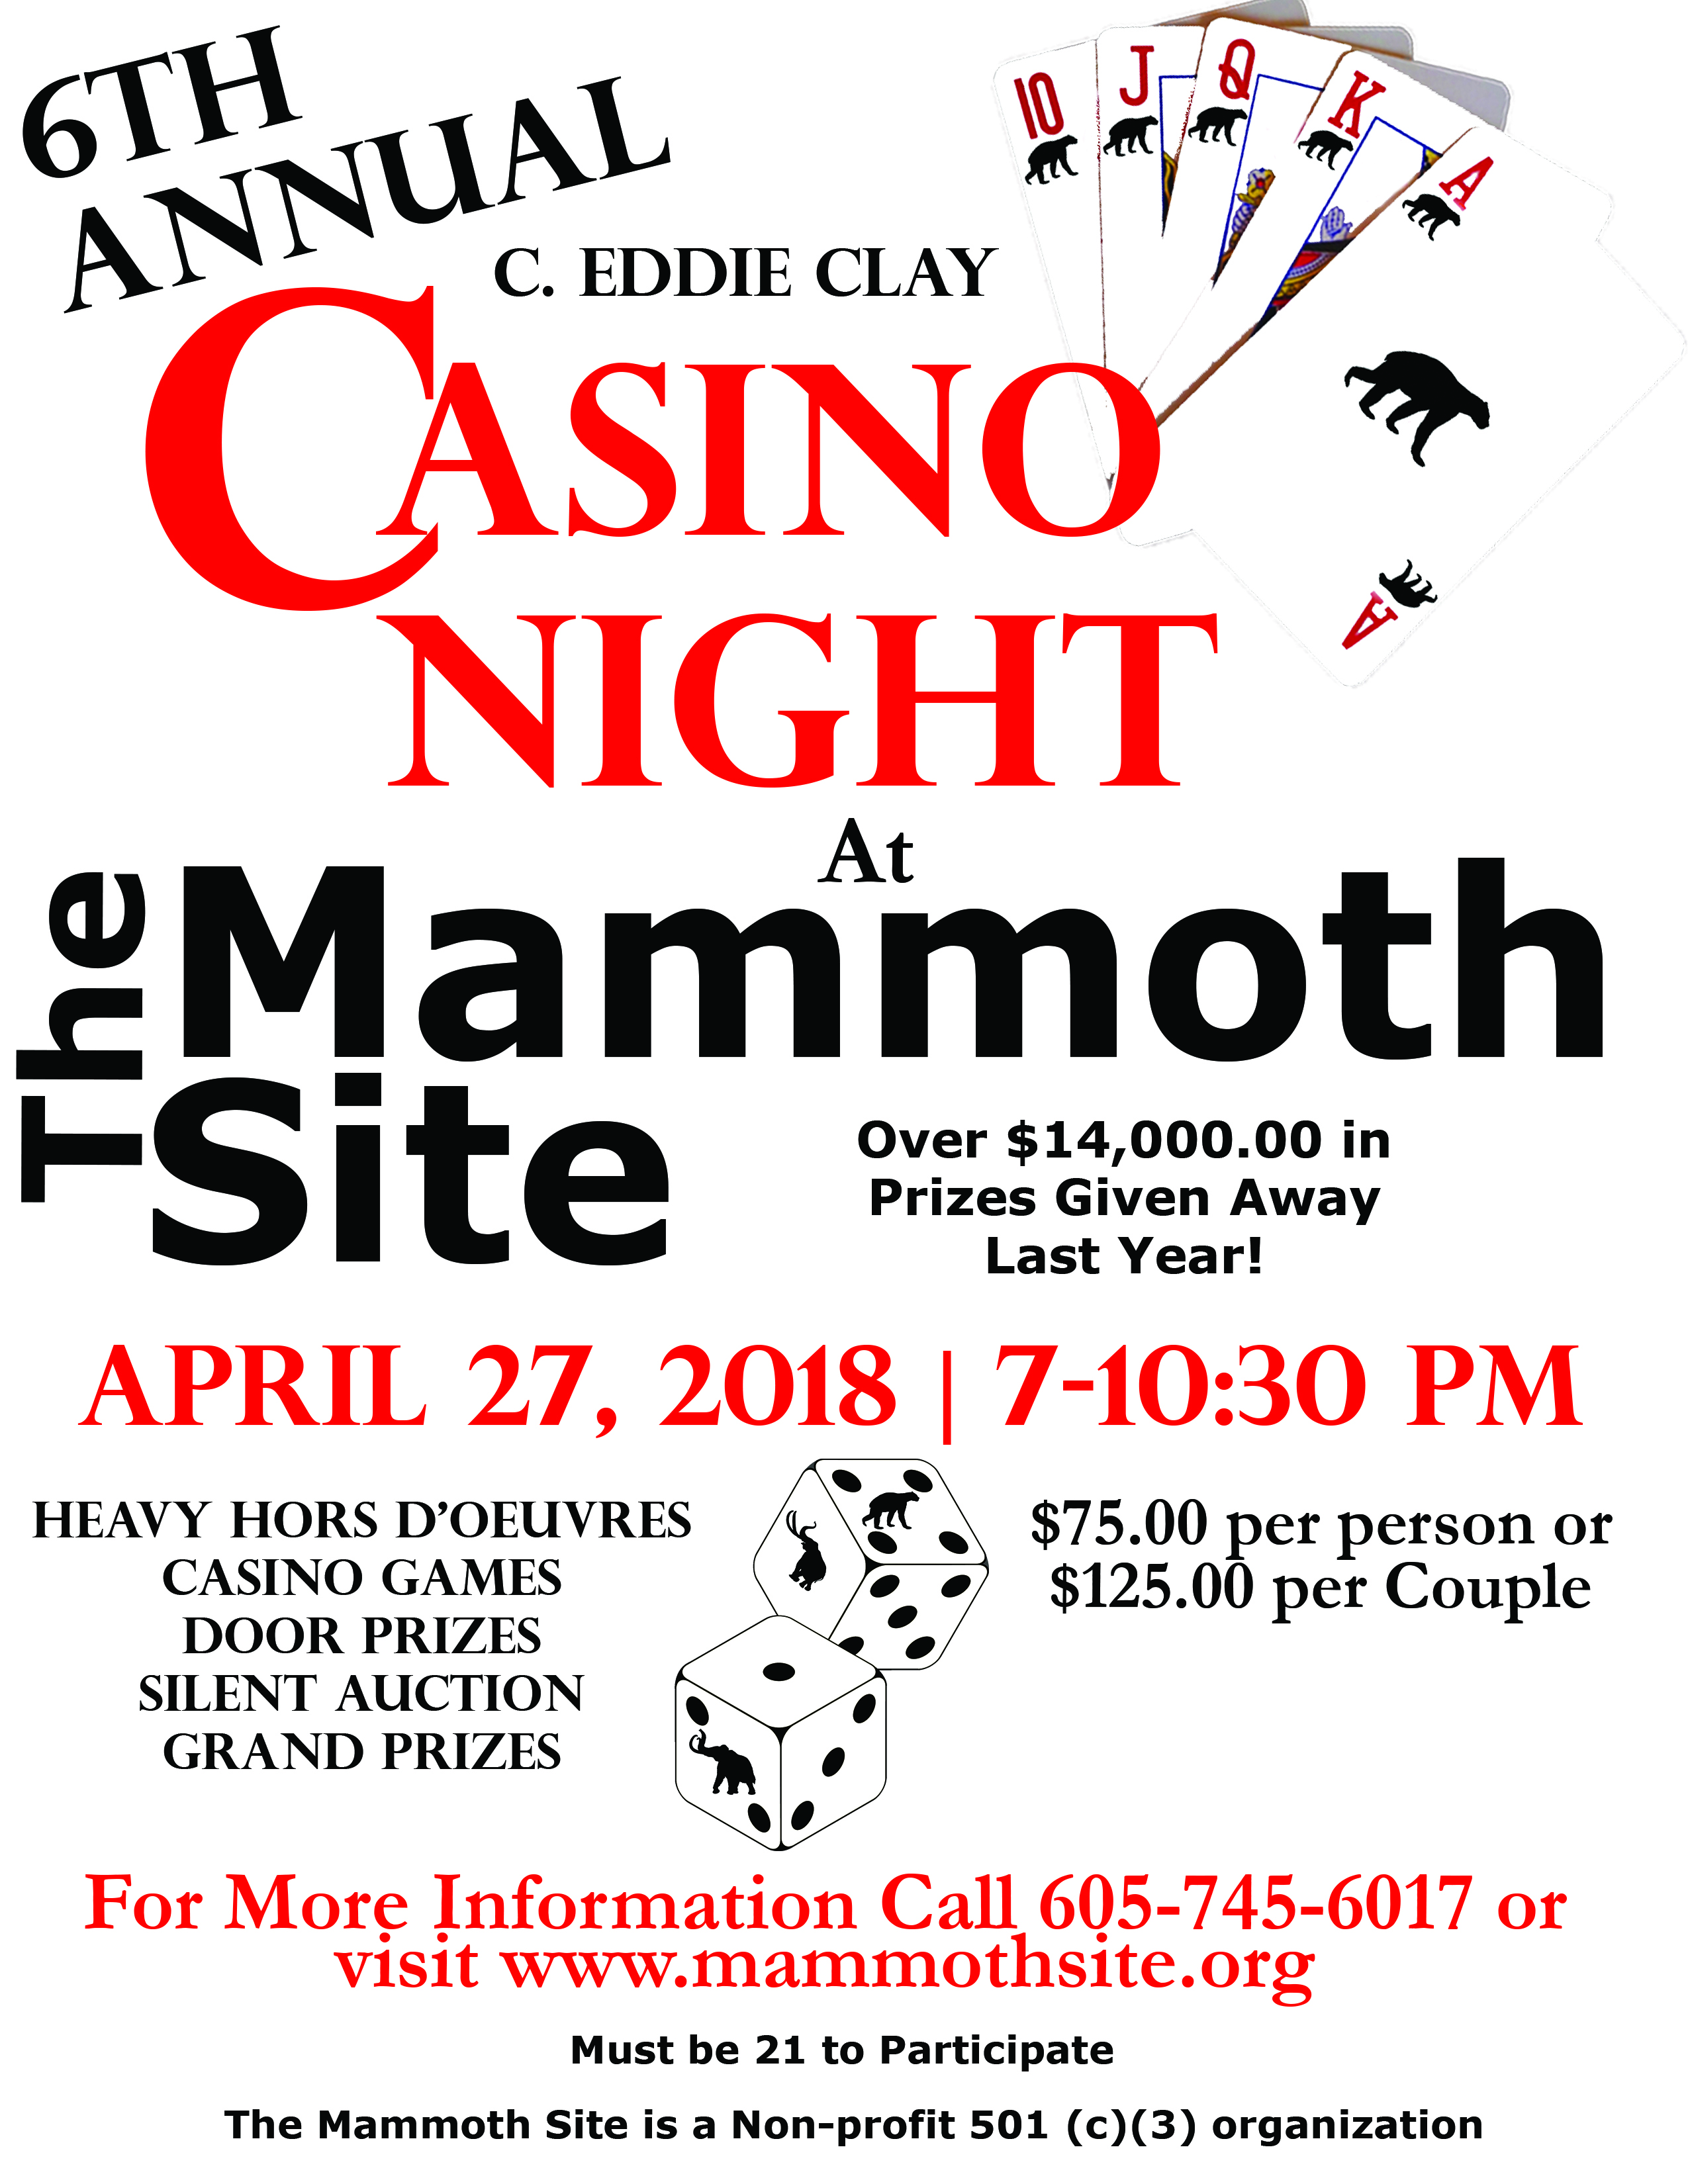 6th Annual Eddie Clay Legacy Casino Night at The Mammoth Site